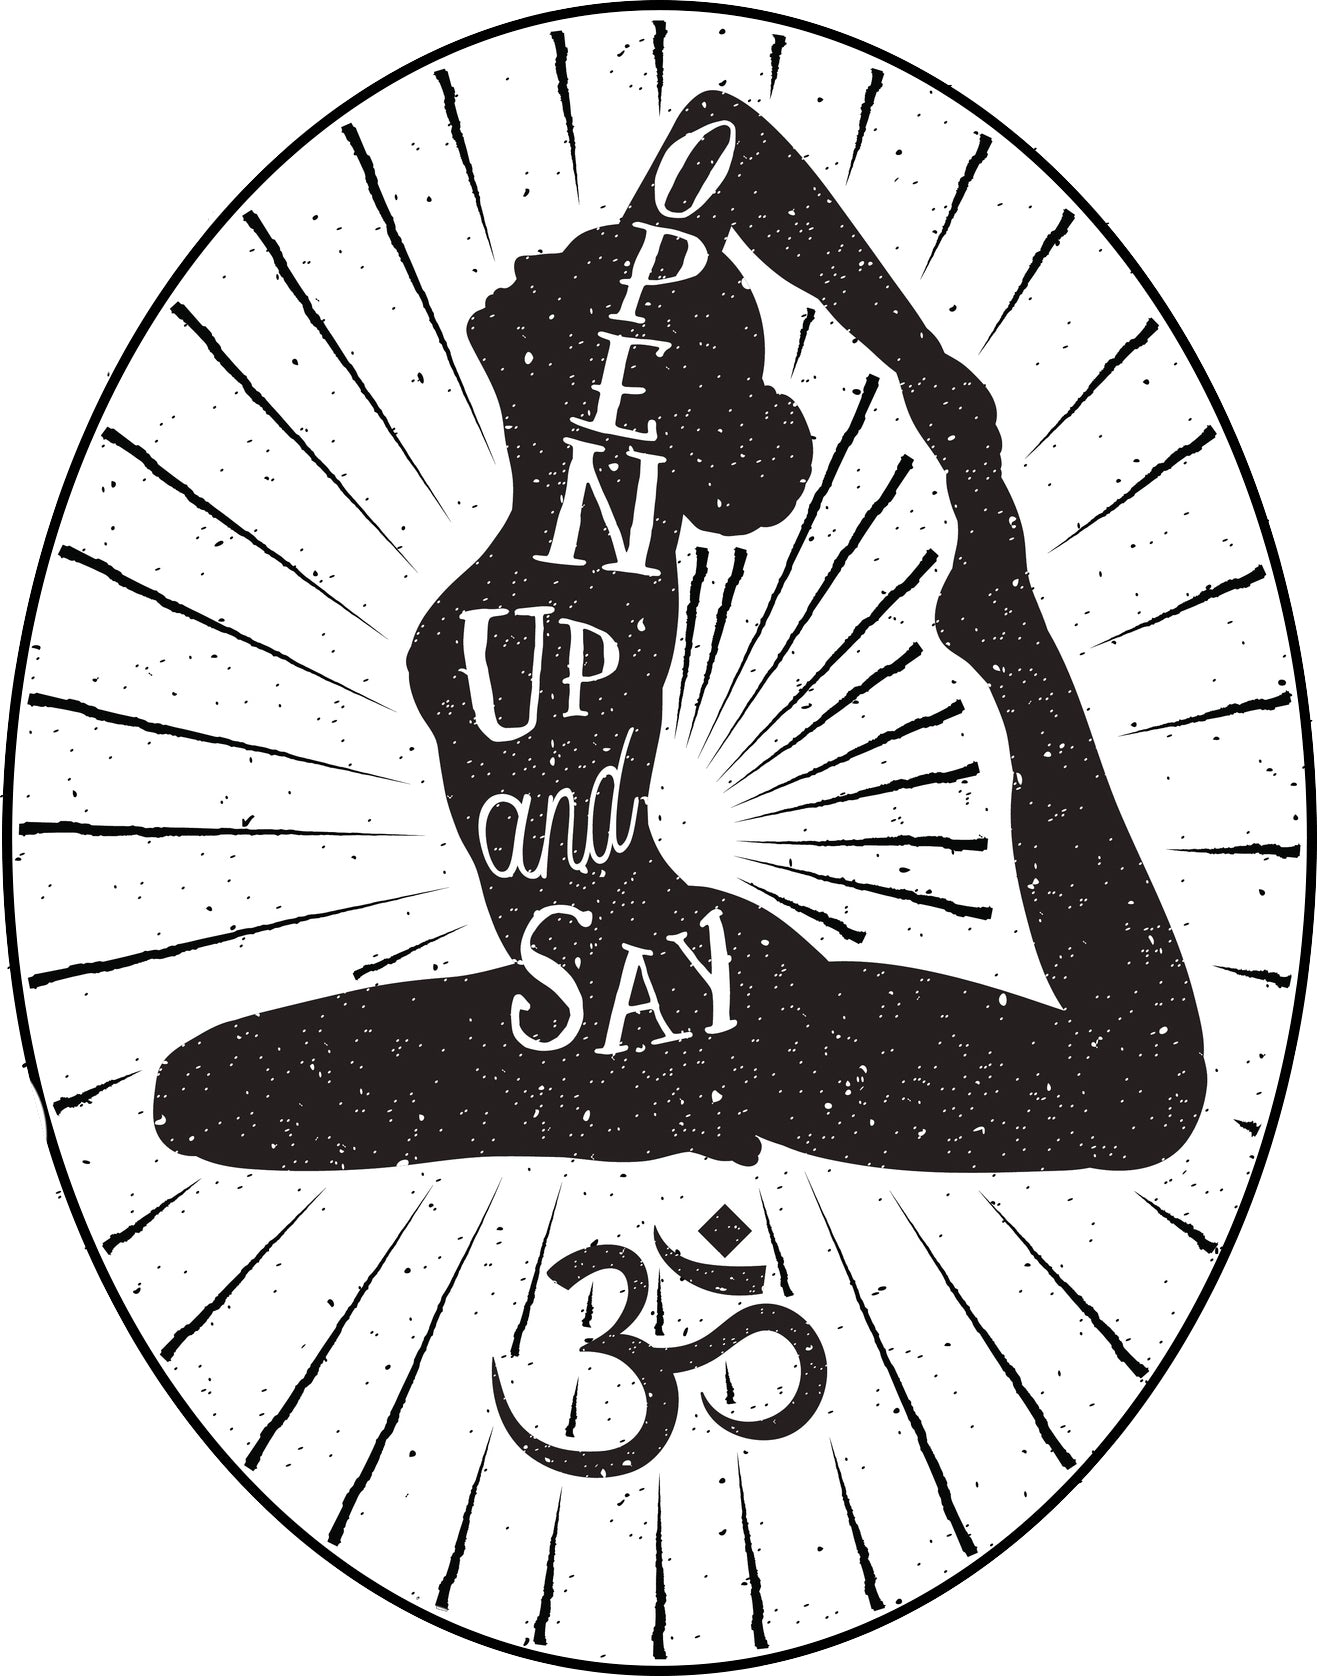 Cool Black and White Zen Yogi Yoga - Open Up and Say Ohm Border Around Image As Shown Vinyl Sticker